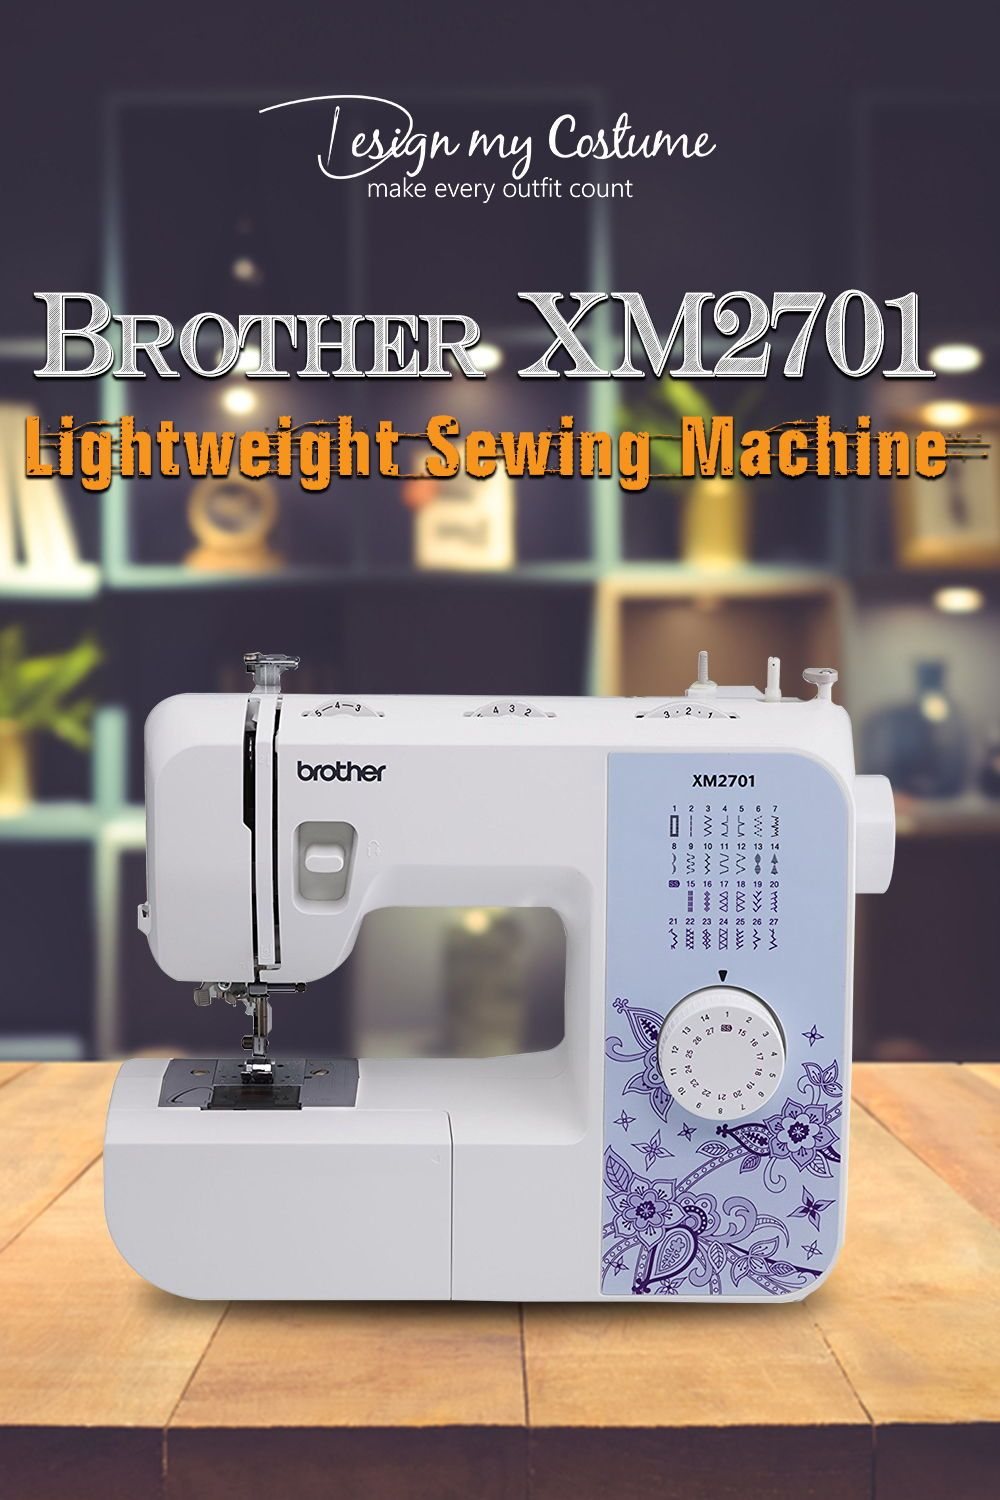 Brother Xm2701 Lightweight Sewing Machine Embroidery Machines